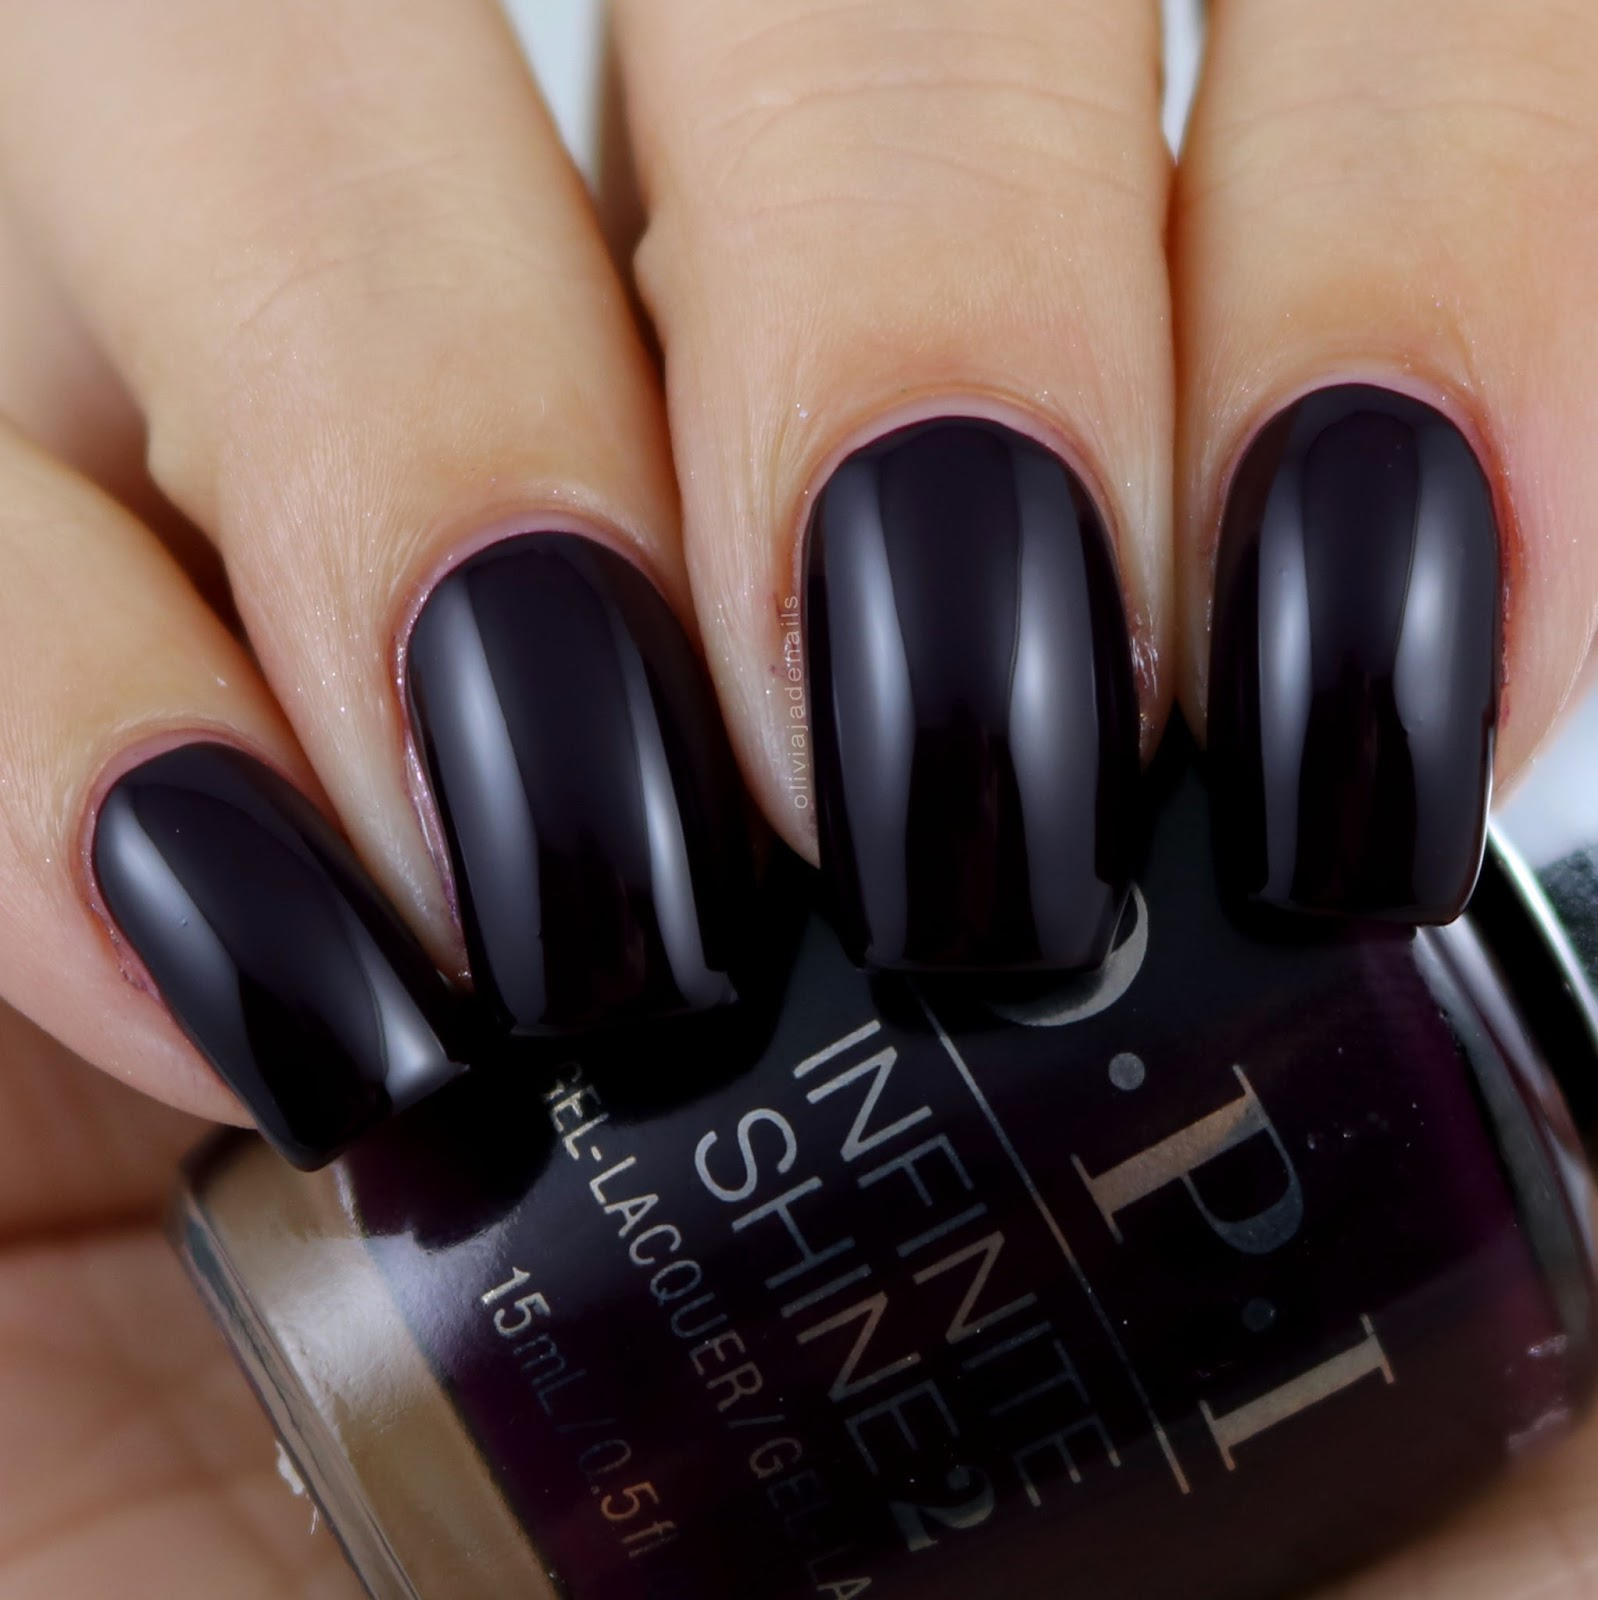 Olivia Jade Nails: OPI Love OPI, XOXO Collection - Swatches & Review